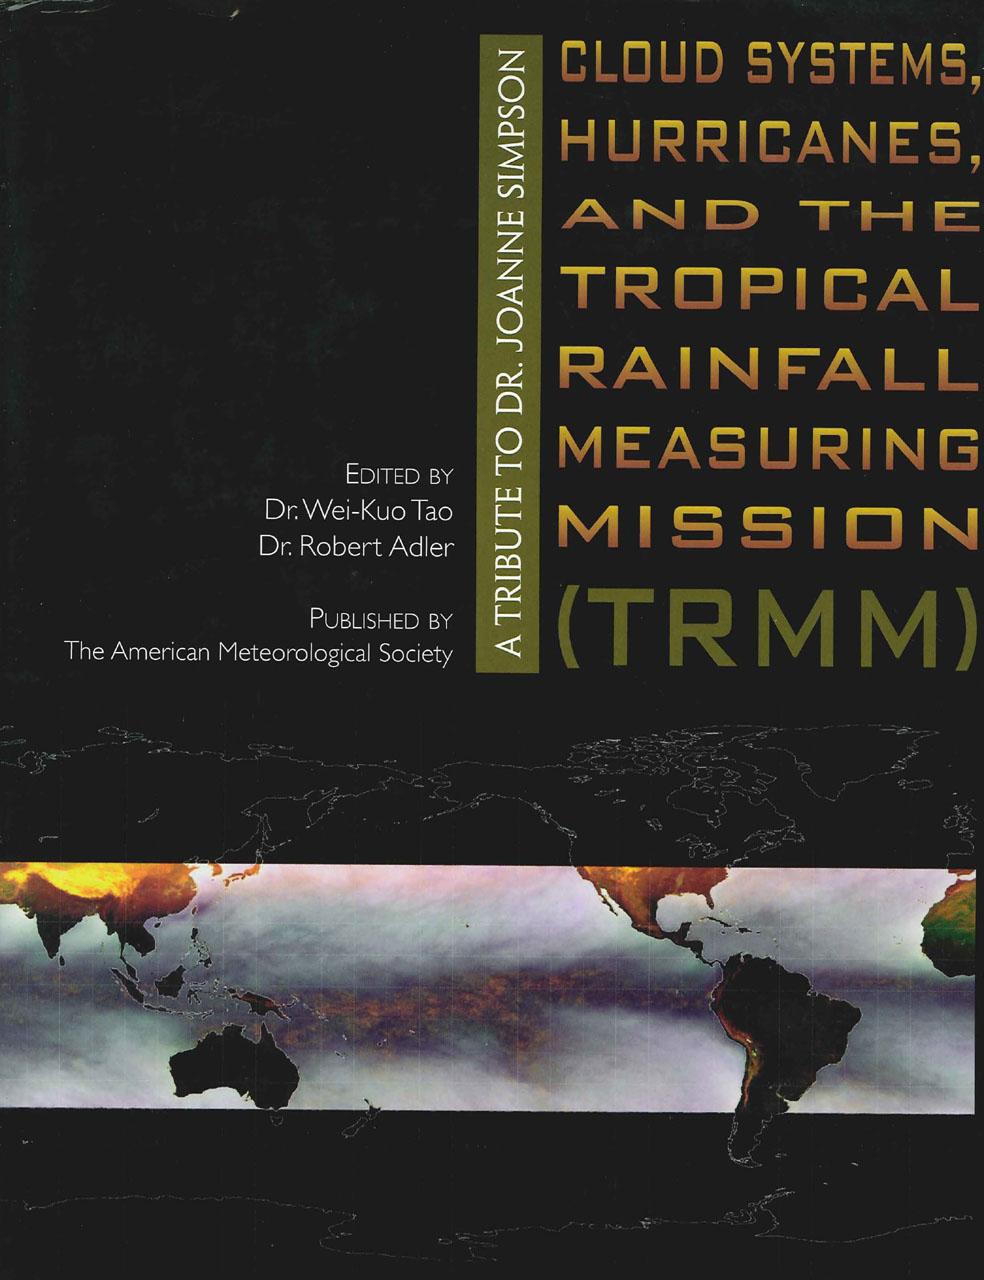 Cloud Systems, Hurricanes, and the Tropical Rainfall Measuring Mission: A Tribute to Dr. Joanne Simpson